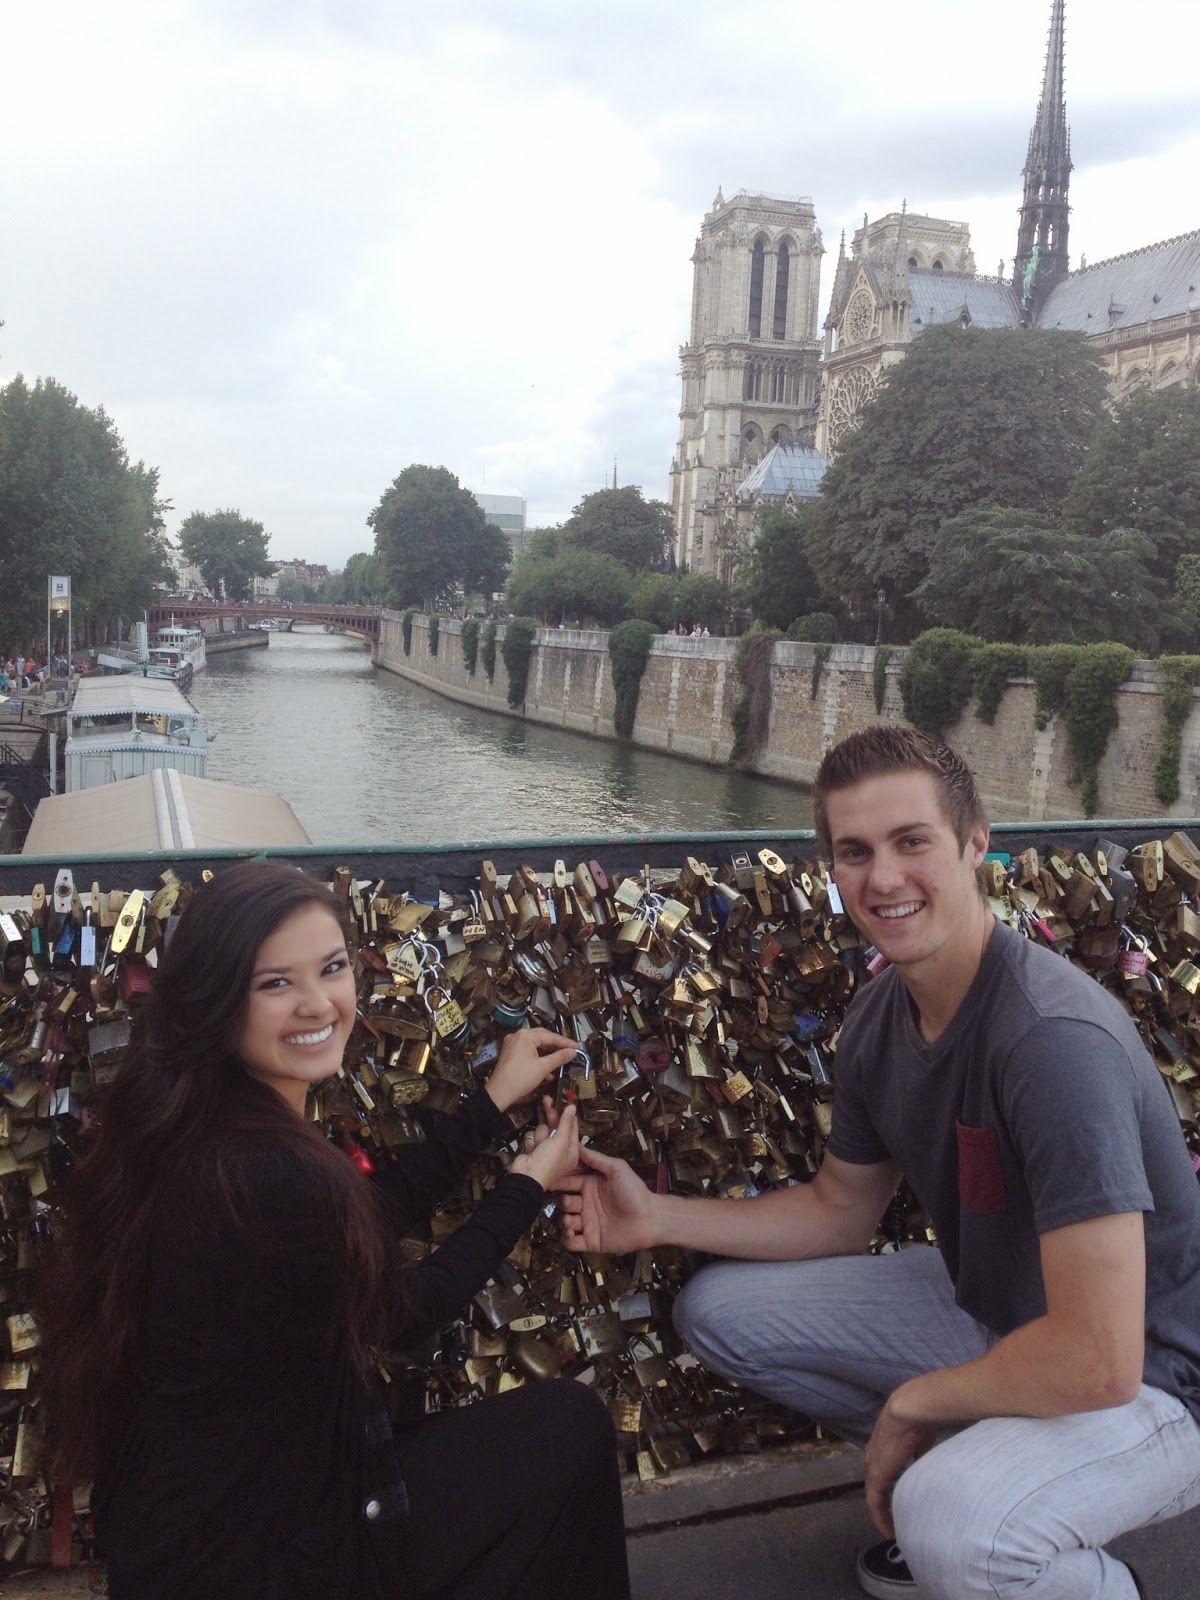 the beauty breakdown morgansbbd paris france study abroad travel notre dame lock bridge